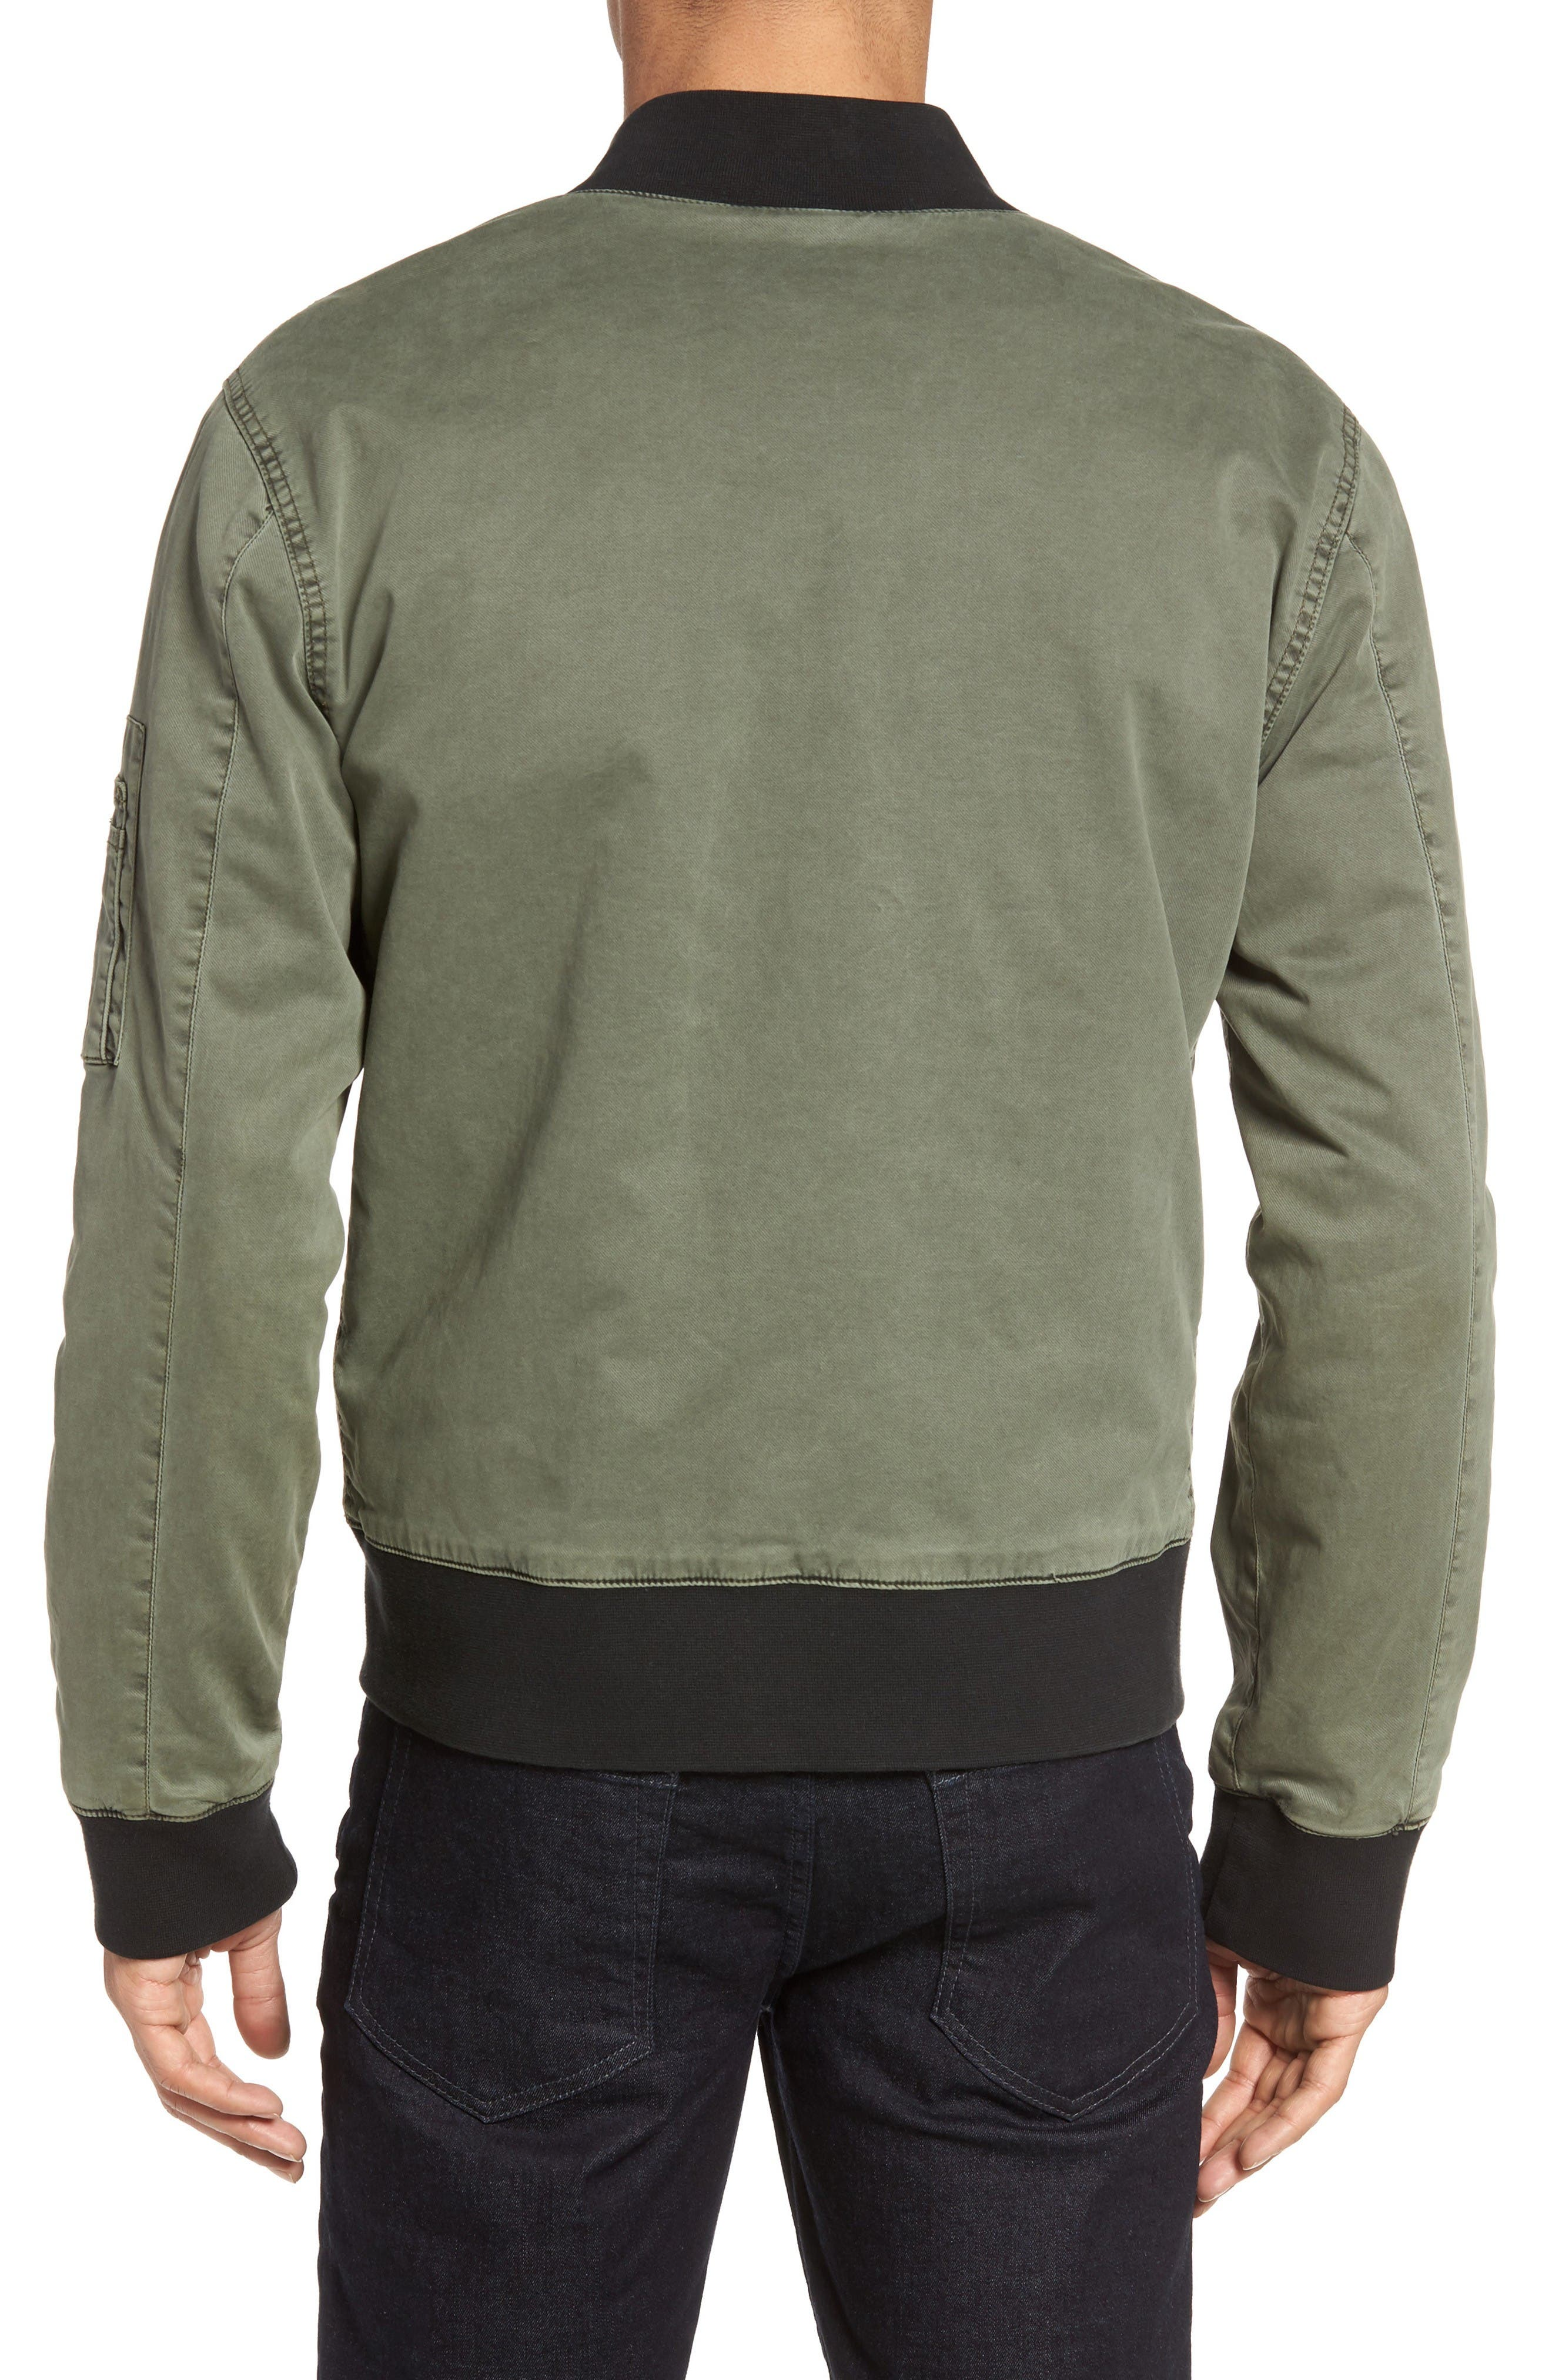 Knox Twill Bomber Jacket,                             Alternate thumbnail 2, color,                             Infantry Green